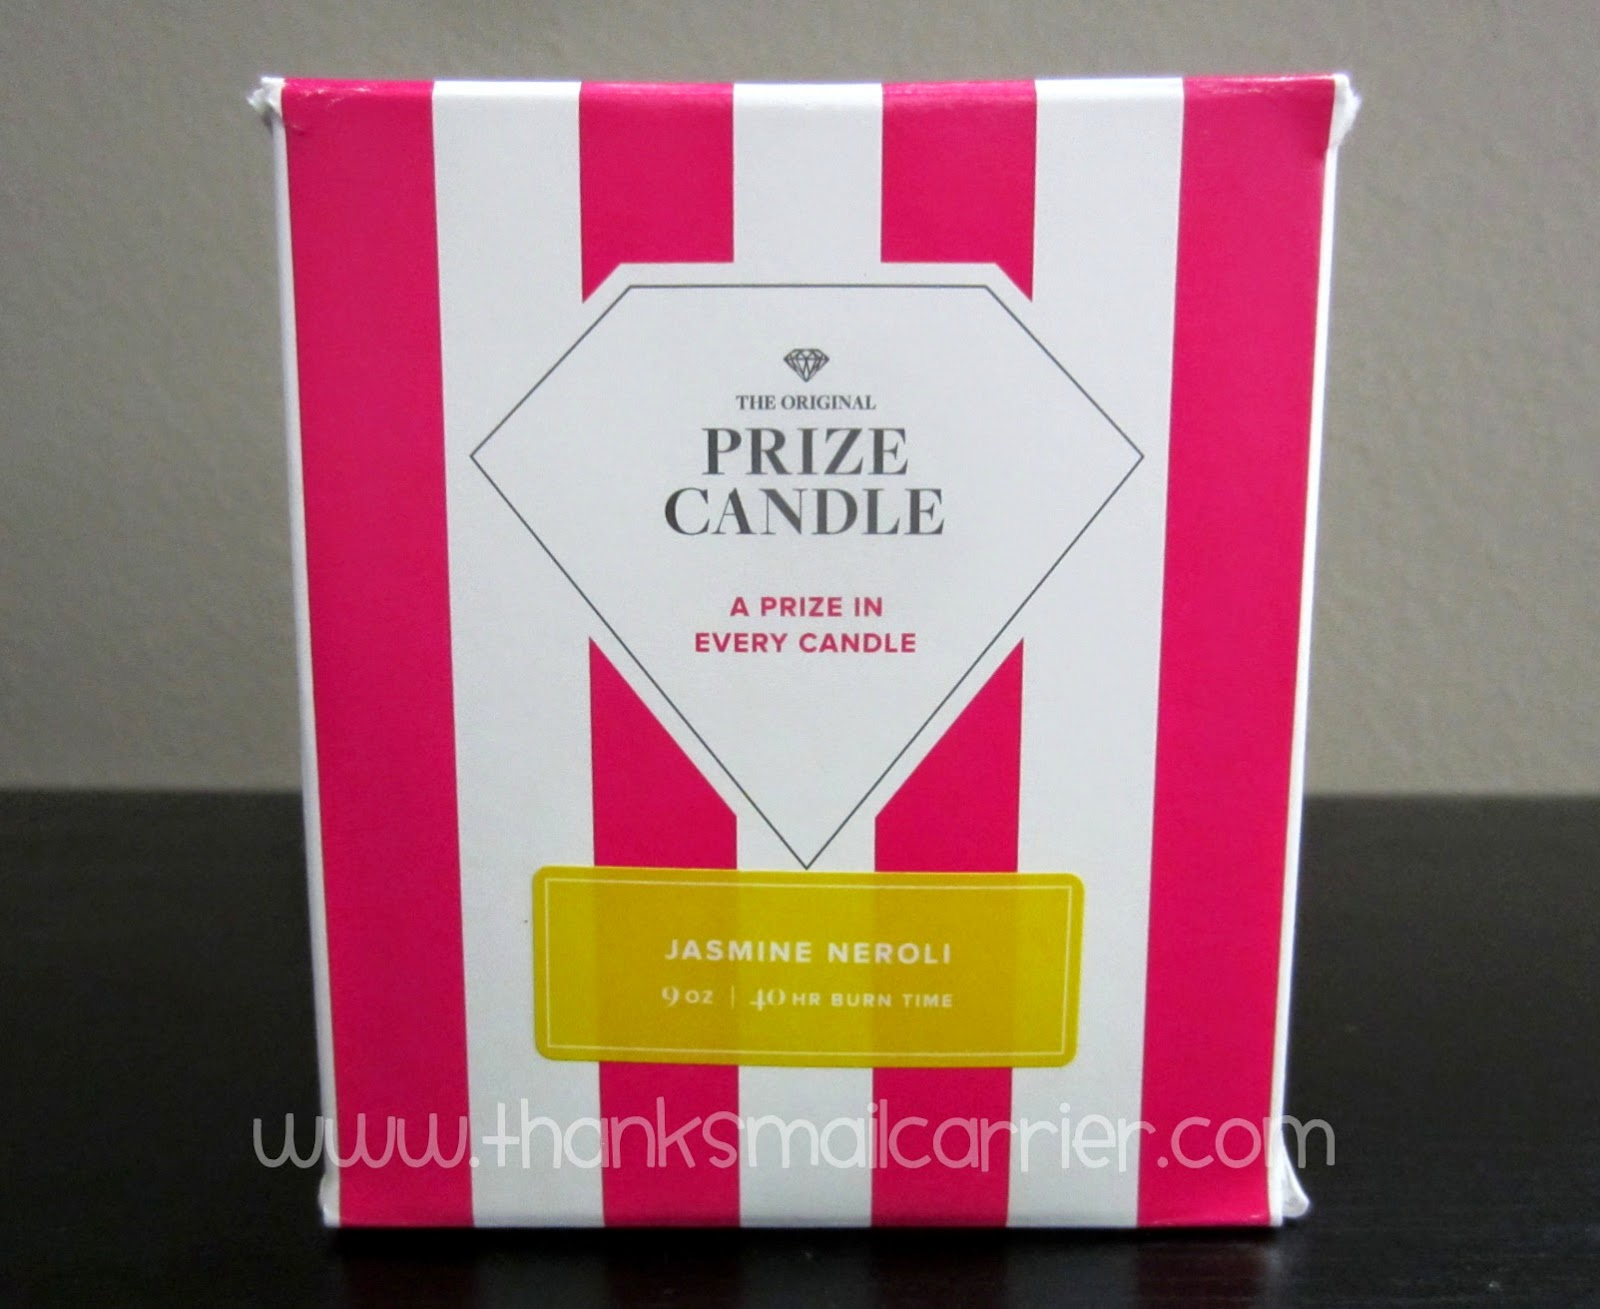 Prize Candle box